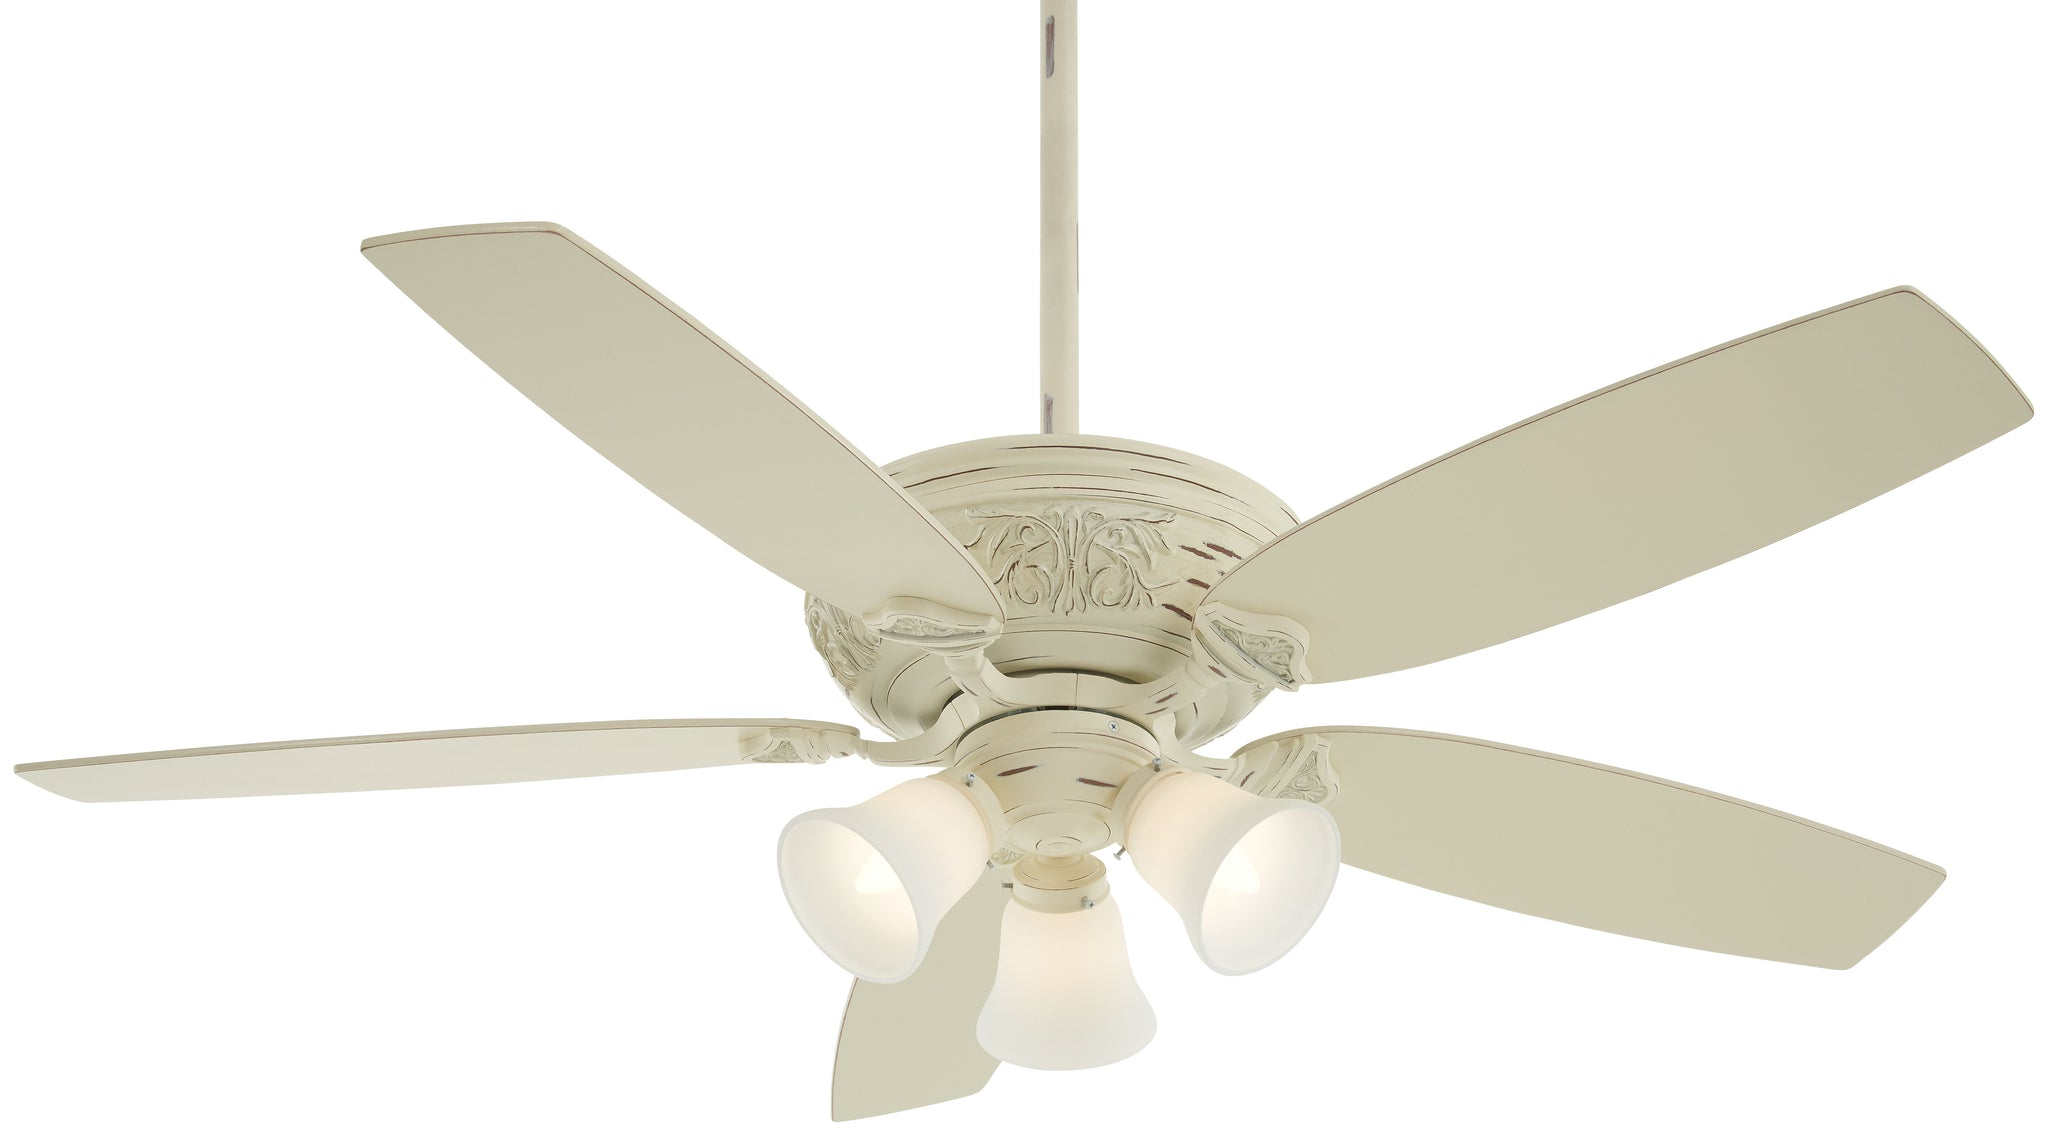 Classica Gallery Edition Interior Fan with Integrated 3-Light Kit, F759L